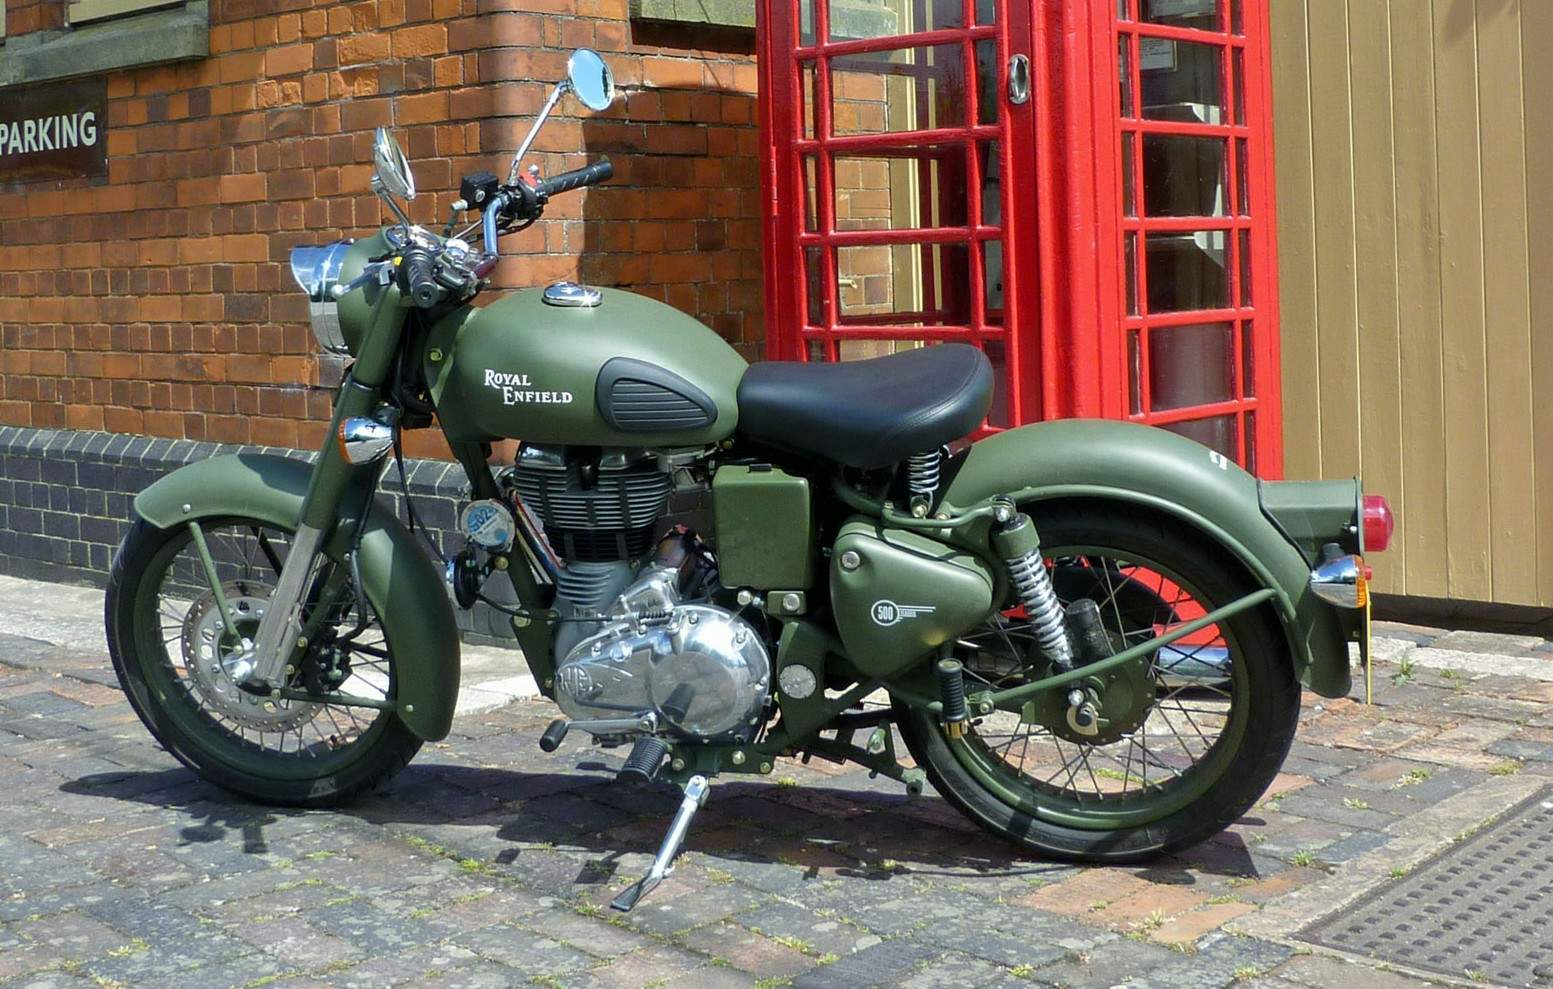 Royal Enfield Bullet G5 Classic EFI images #127317